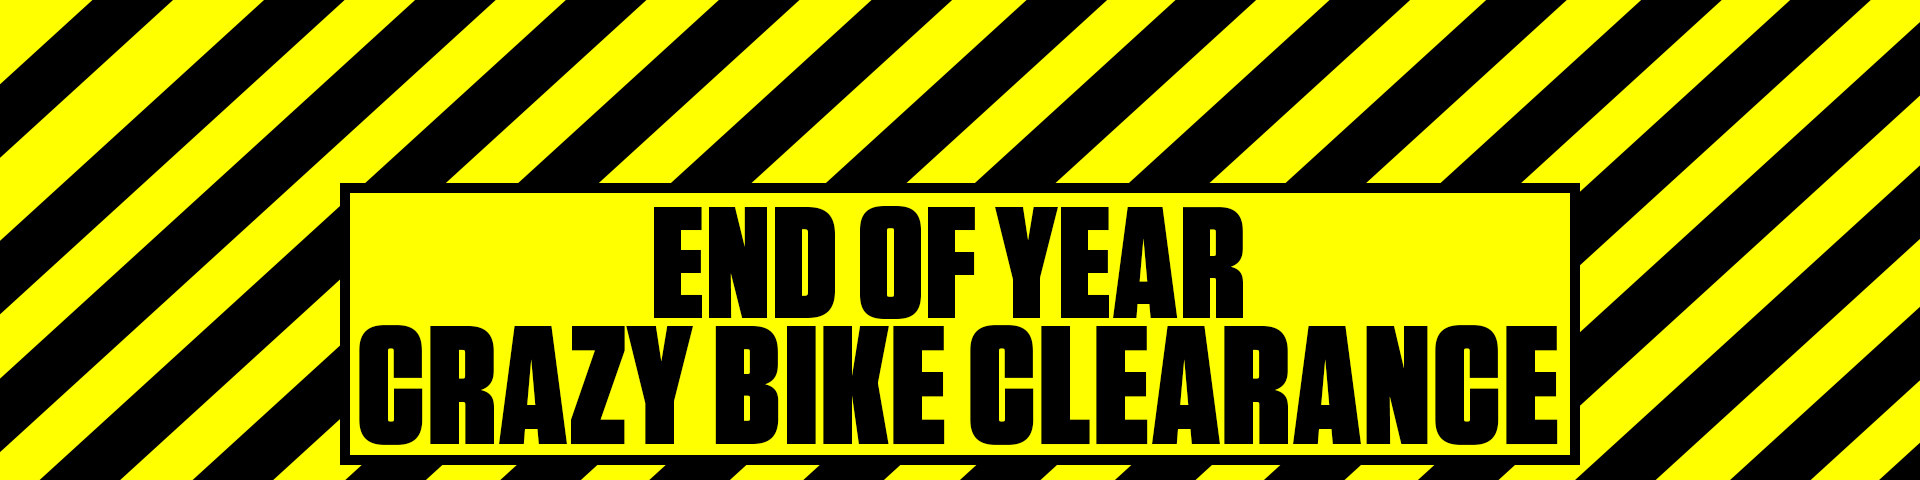 End OF Year Crazy Bike Clearance